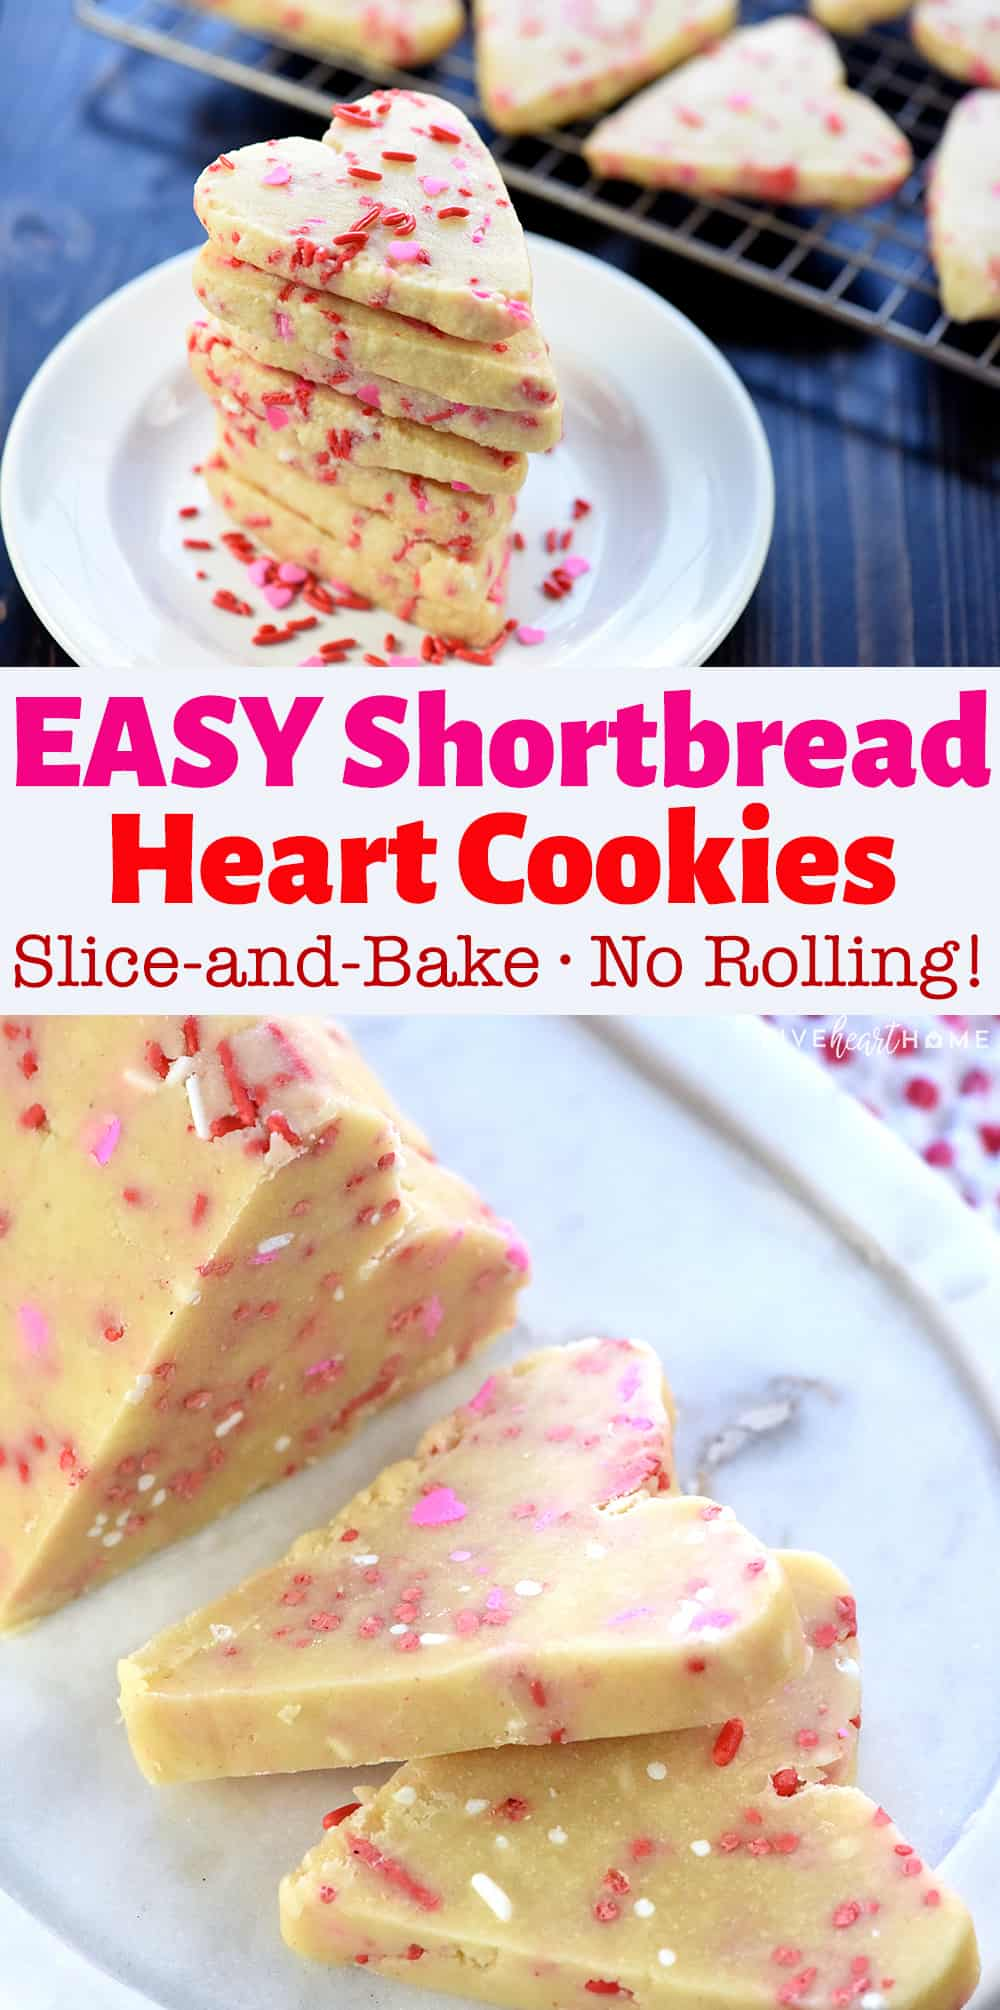 Easy Shortbread Heart-Shaped Cookies ~ slice-and-bake treats that are loaded with sprinkles, perfect for Valentine's Day, and don't even require a cookie cutter! | FiveHeartHome.com via @fivehearthome